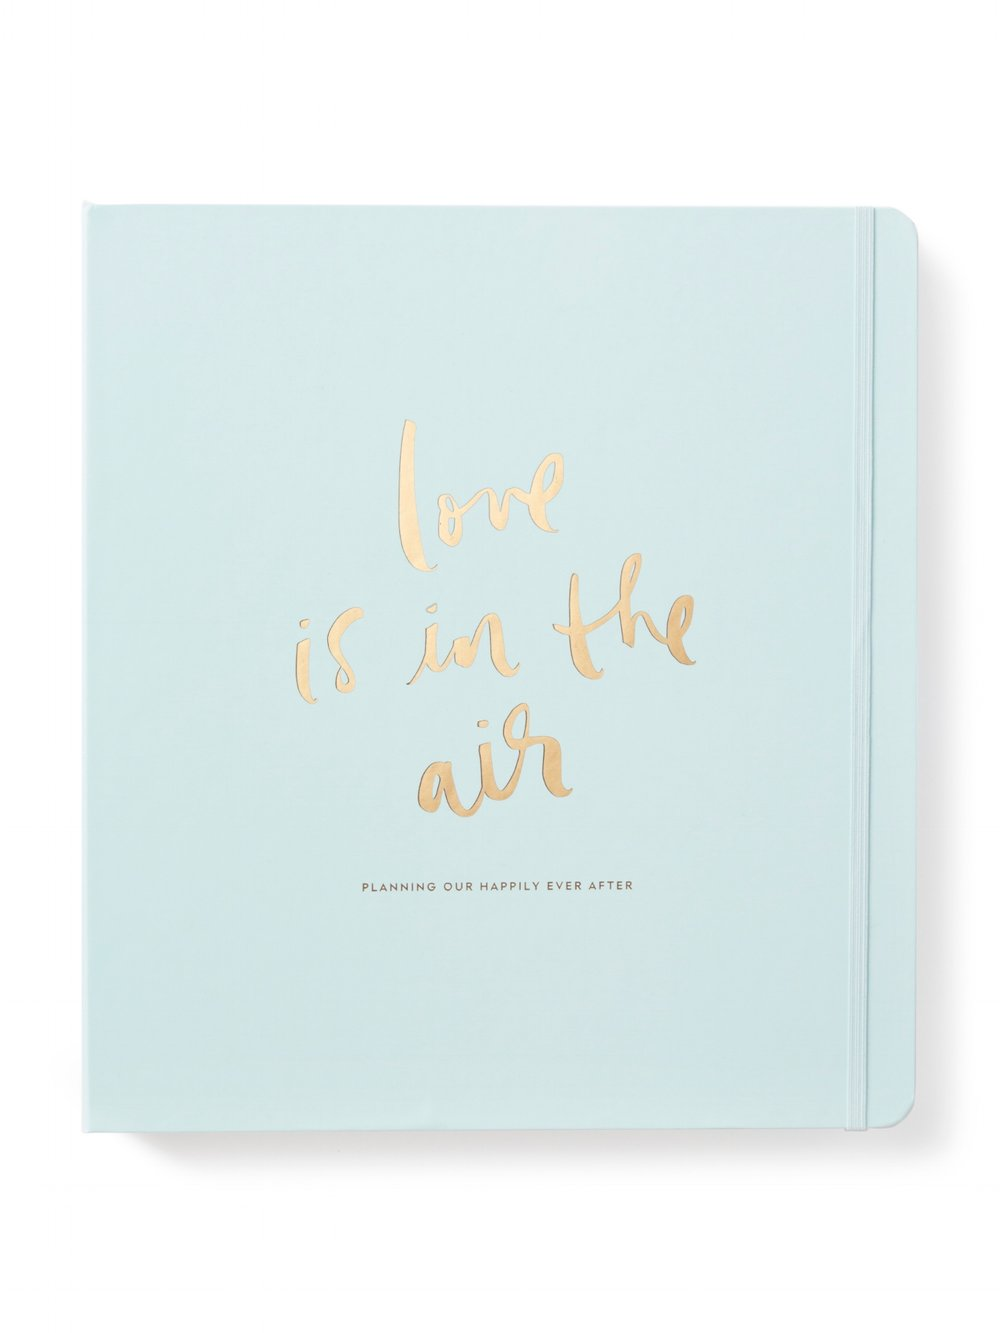 Kate Spade Light Blue Bridal Planner  Details: gold 3 ring binder with pocket with gold accents and 48 planning pages